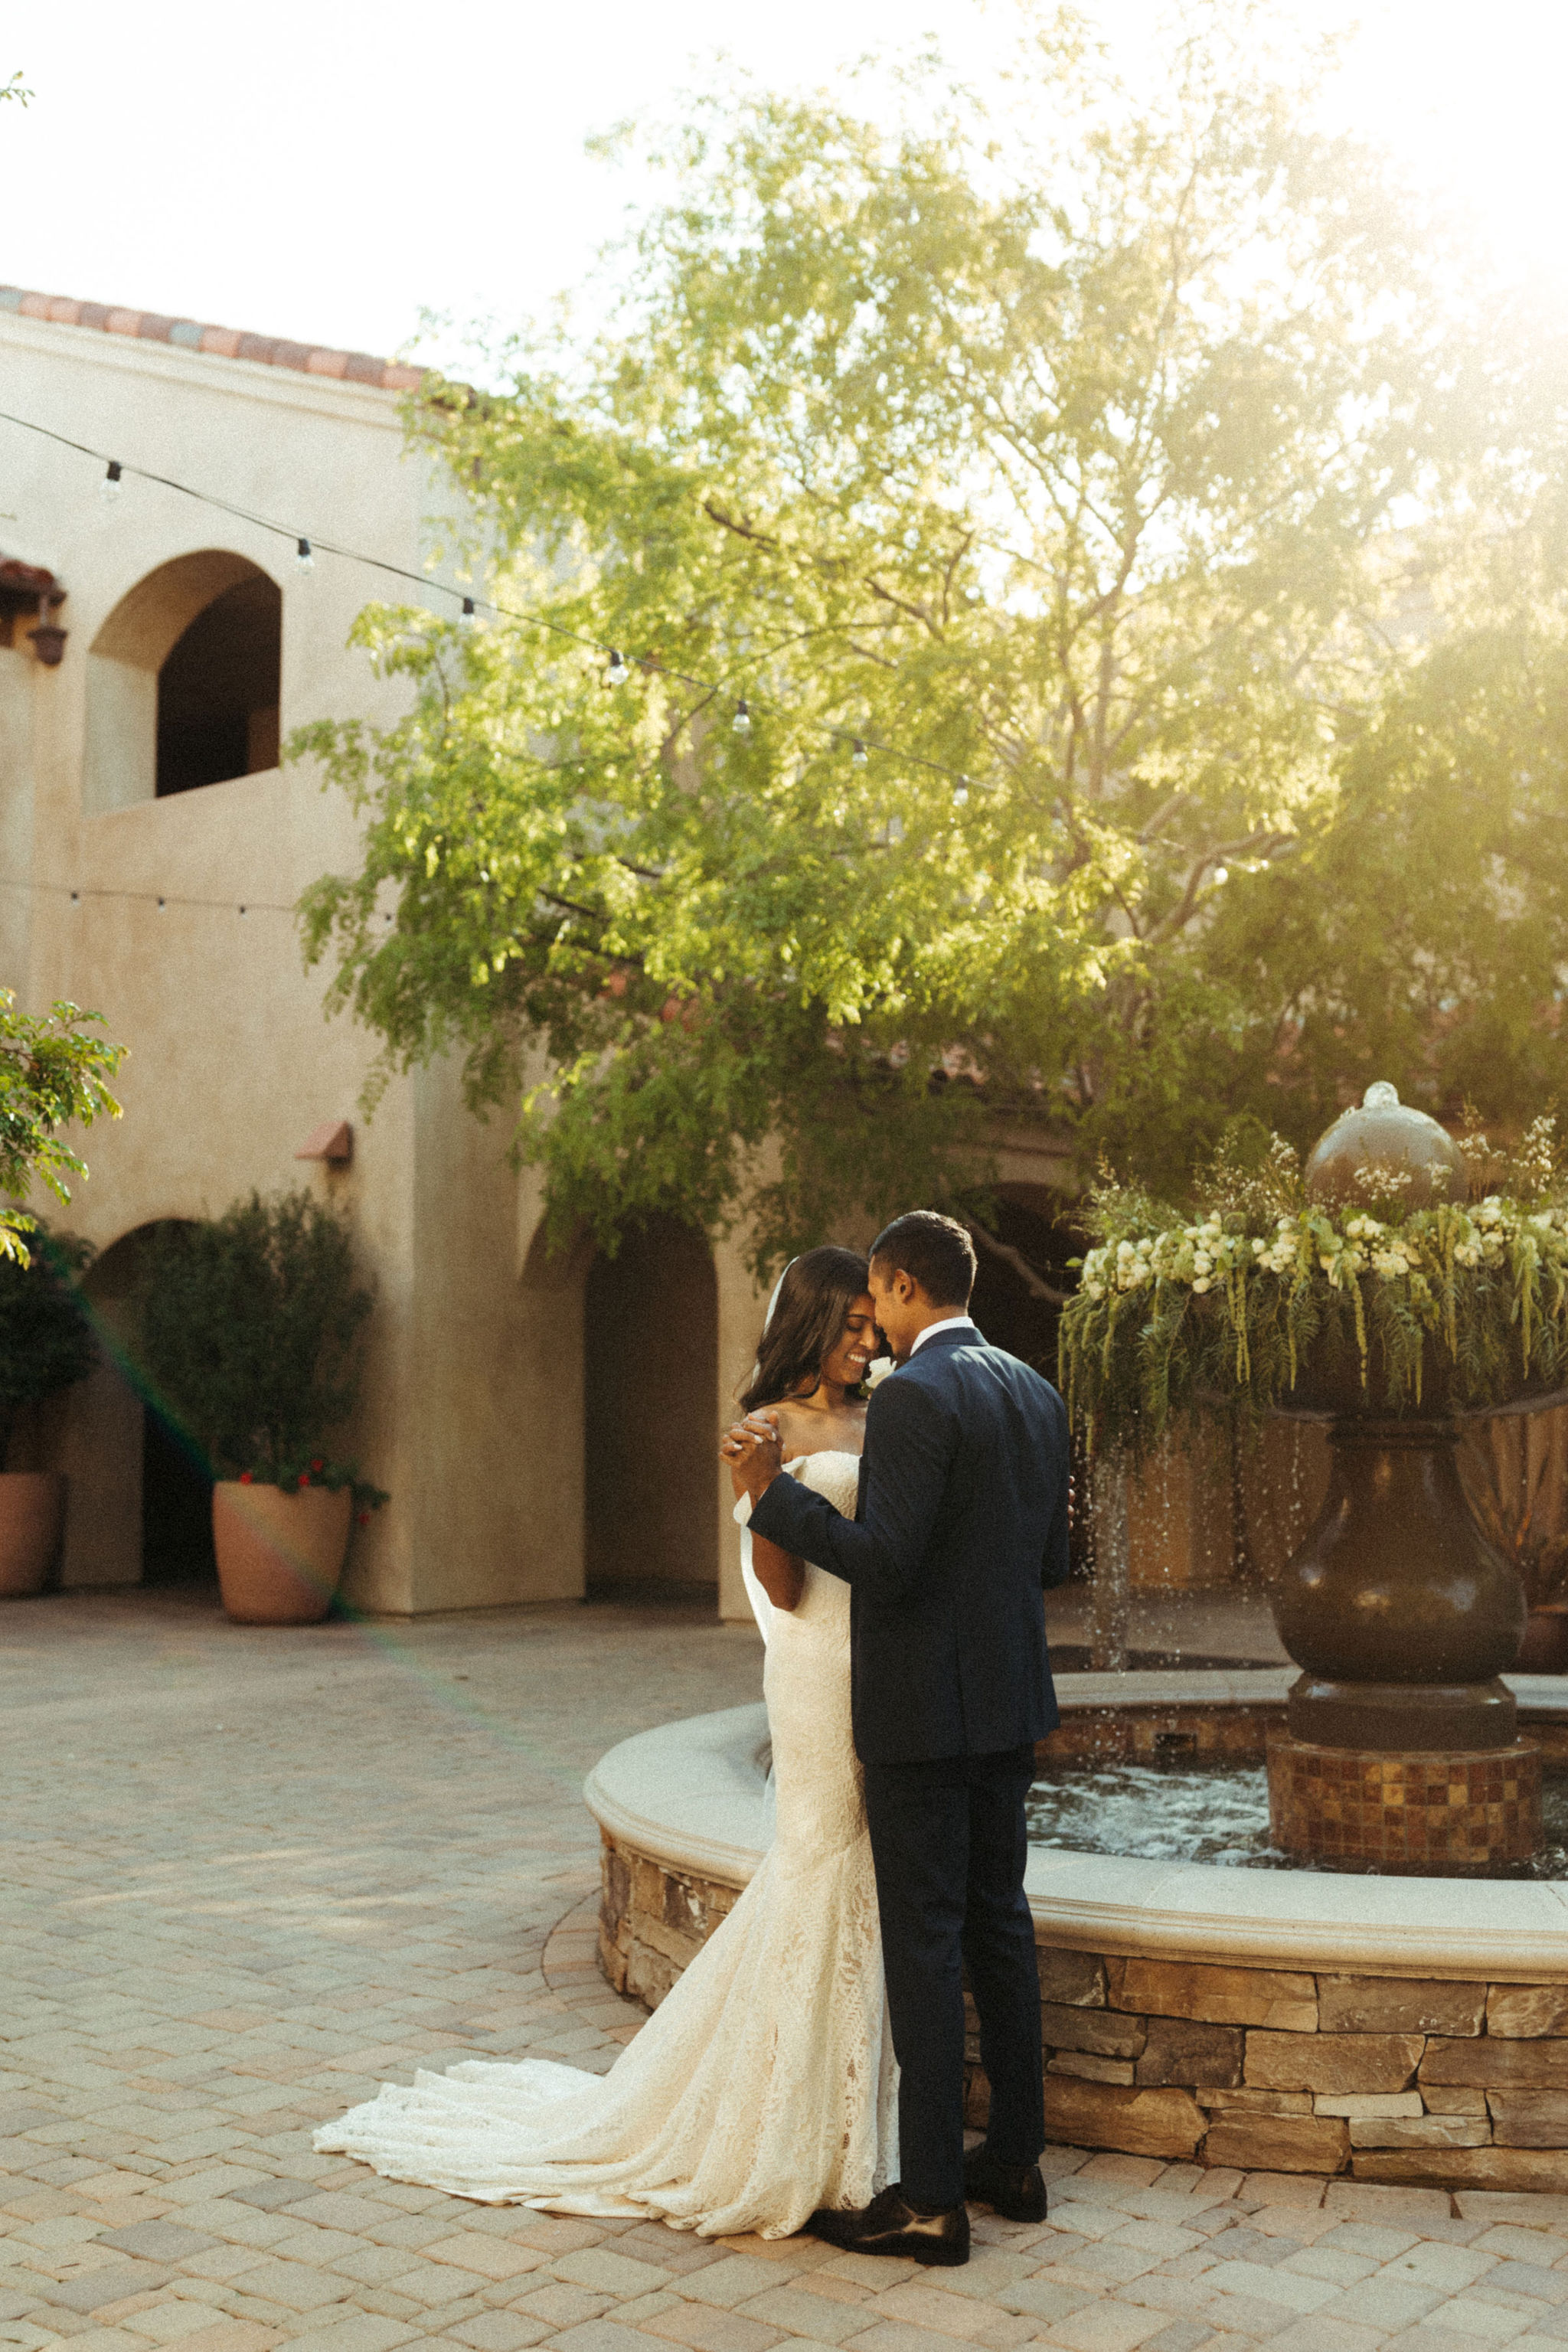 spanish style courtyard wedding venue with fountain